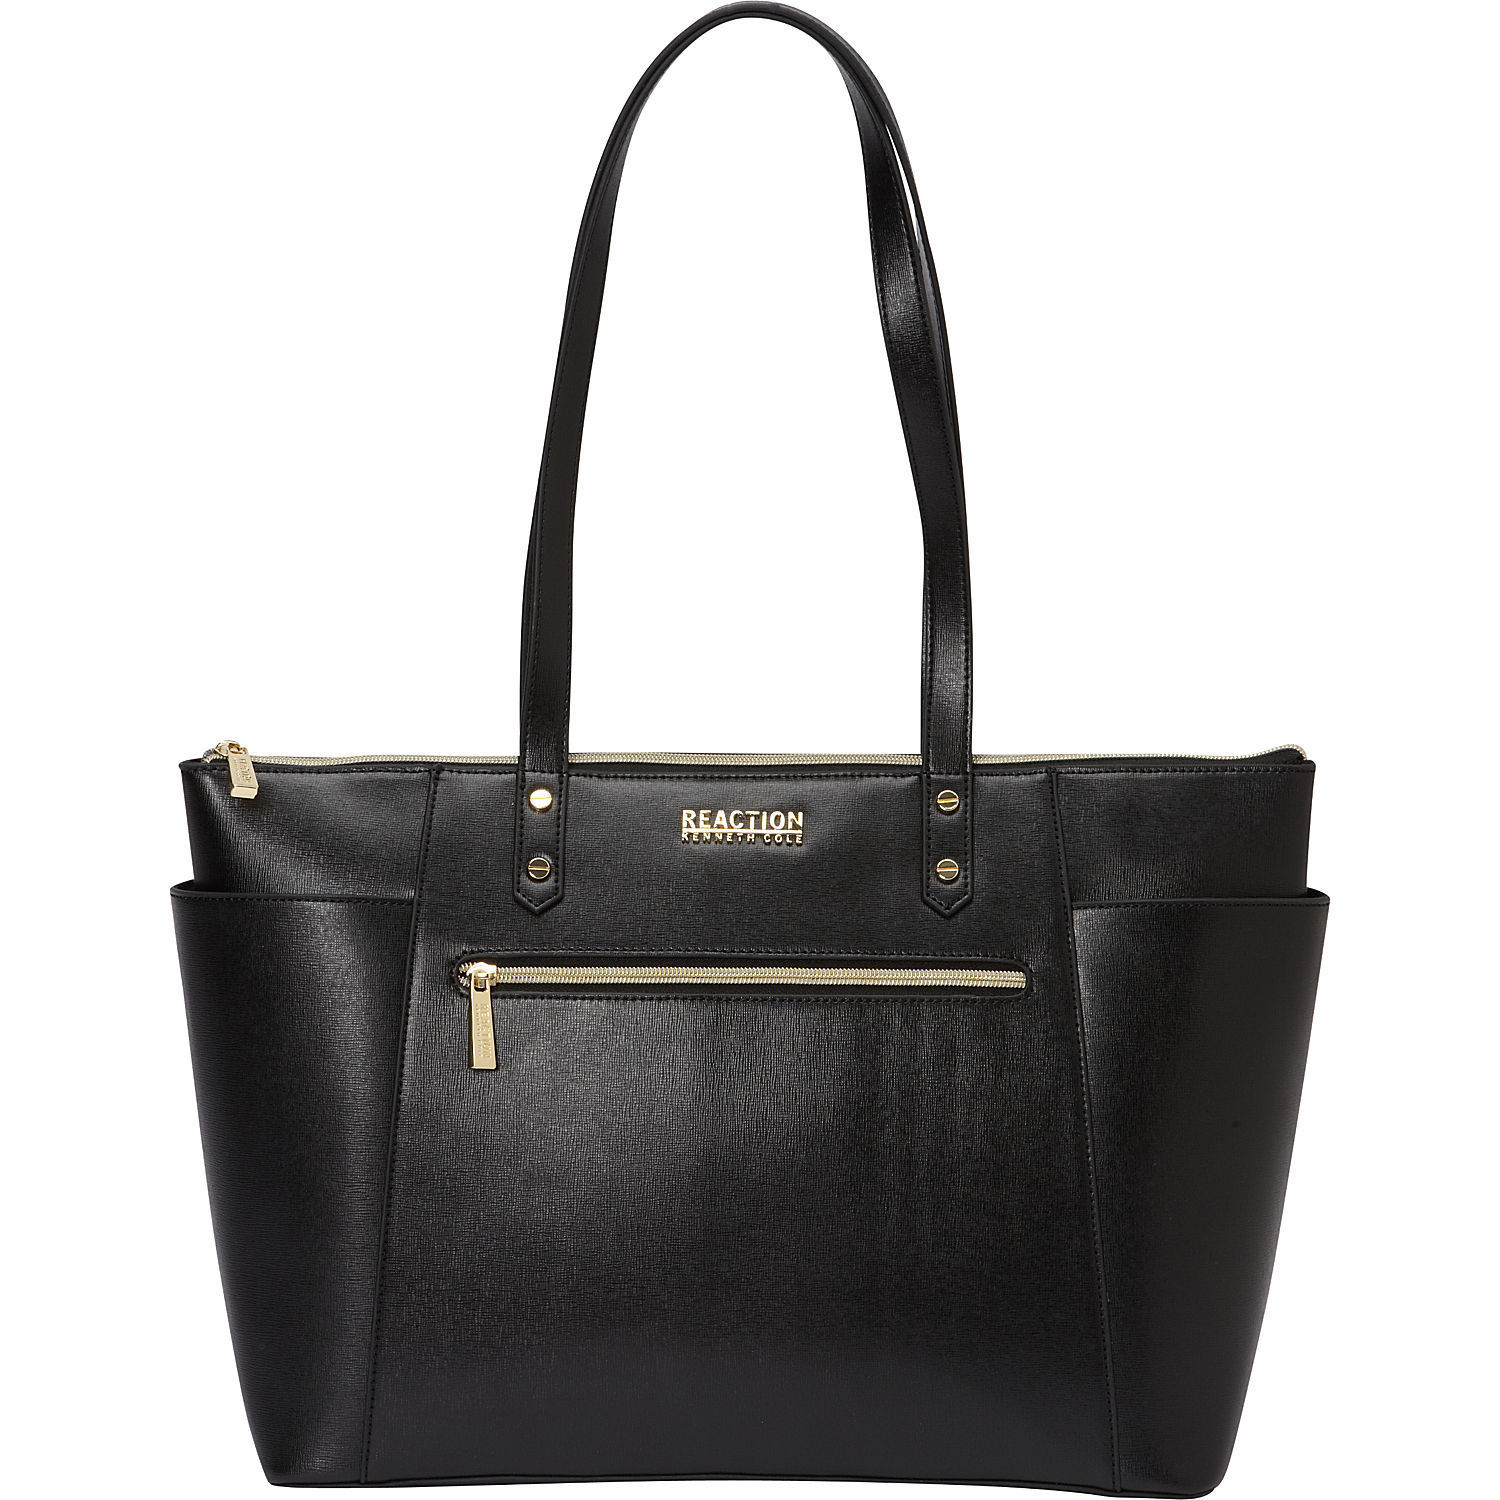 Kenneth Cole Reaction Saffiano Top